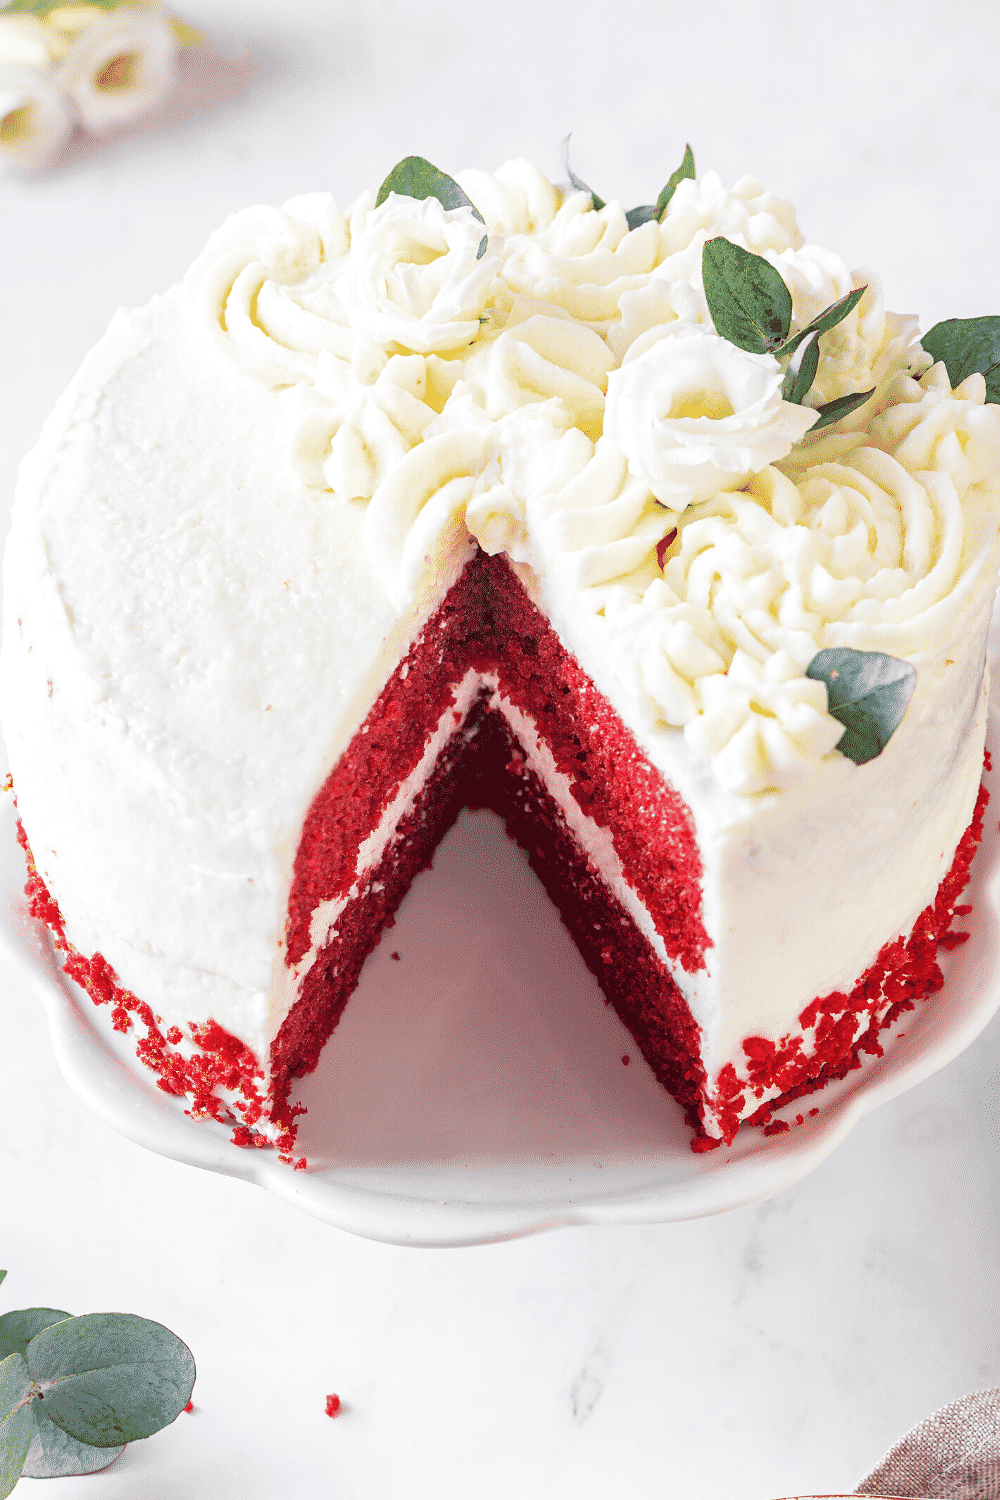 A red velvet cake on a white serving tray. A piece of cake is missing from the front of the cake.